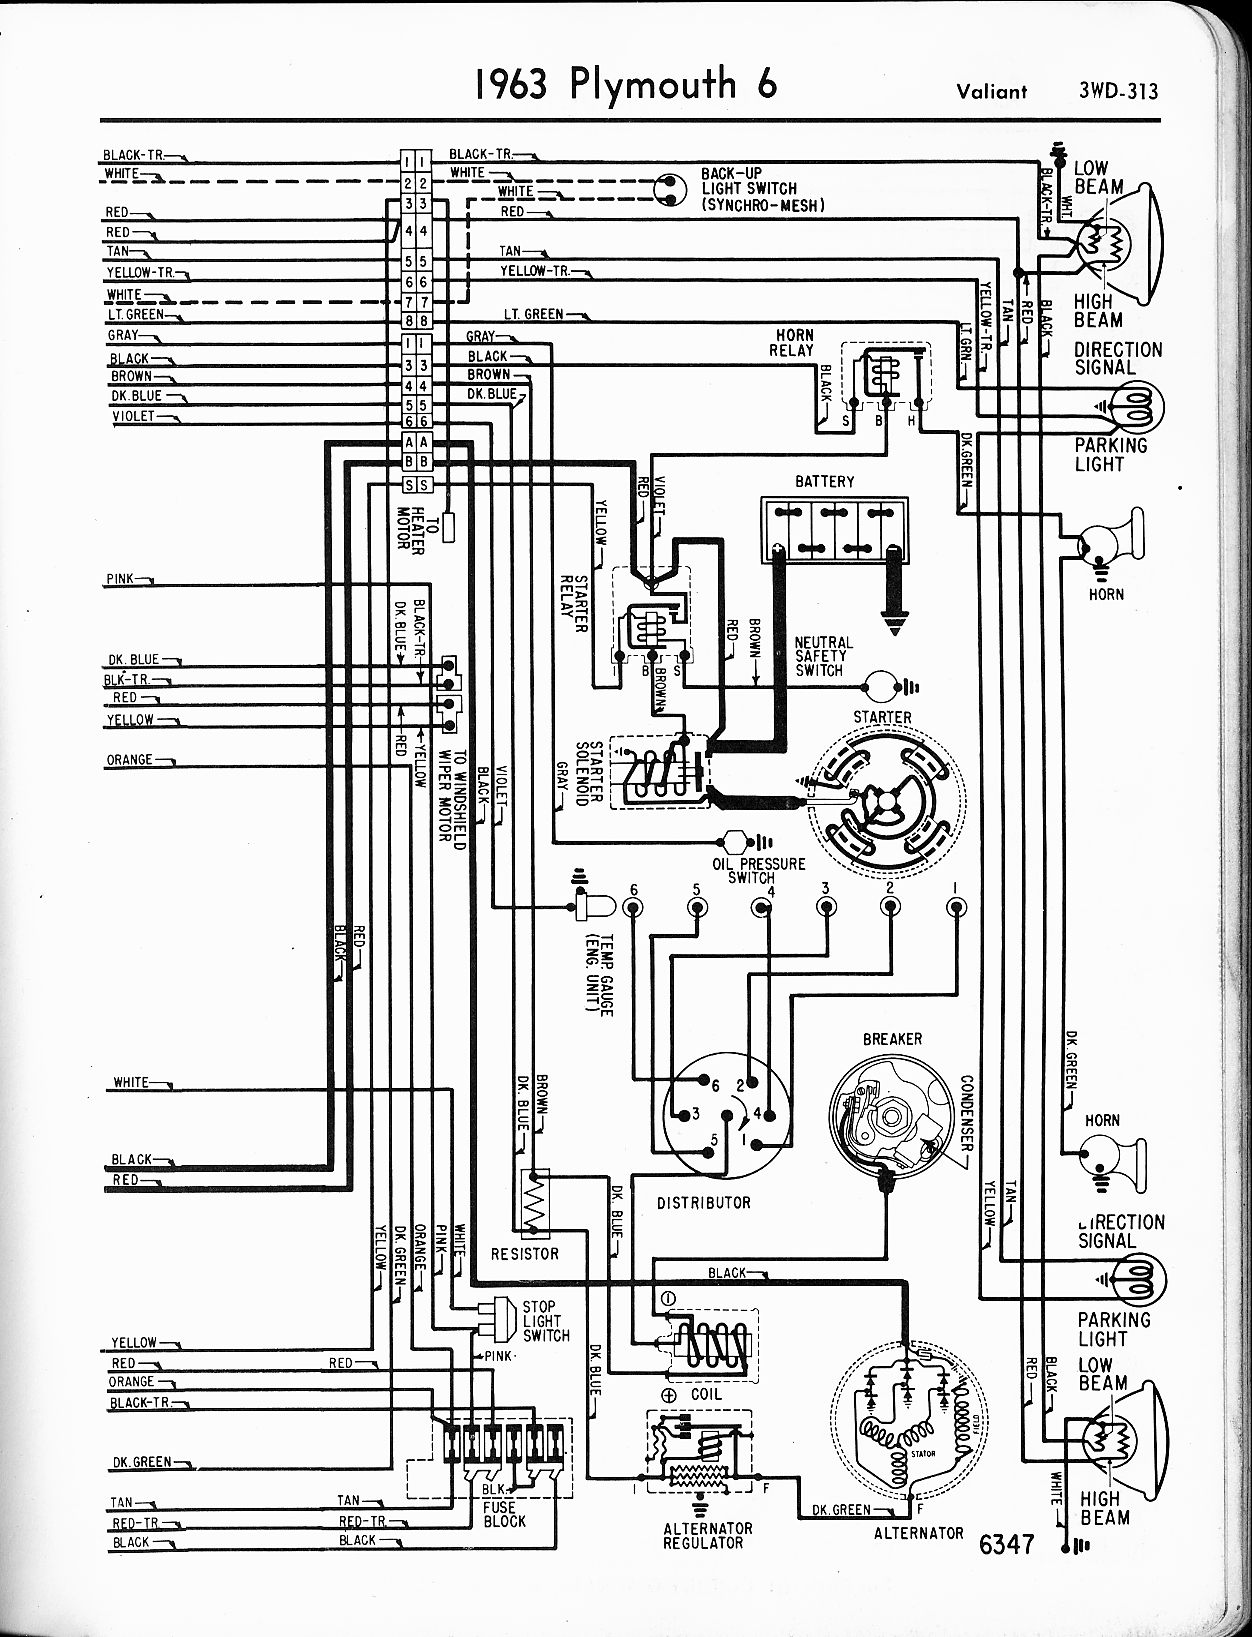 1971 Plymouth Satellite Engine Wiring Diagram Diagrams Dodge 360 1972 Duster Schema Jeep Wagoneer